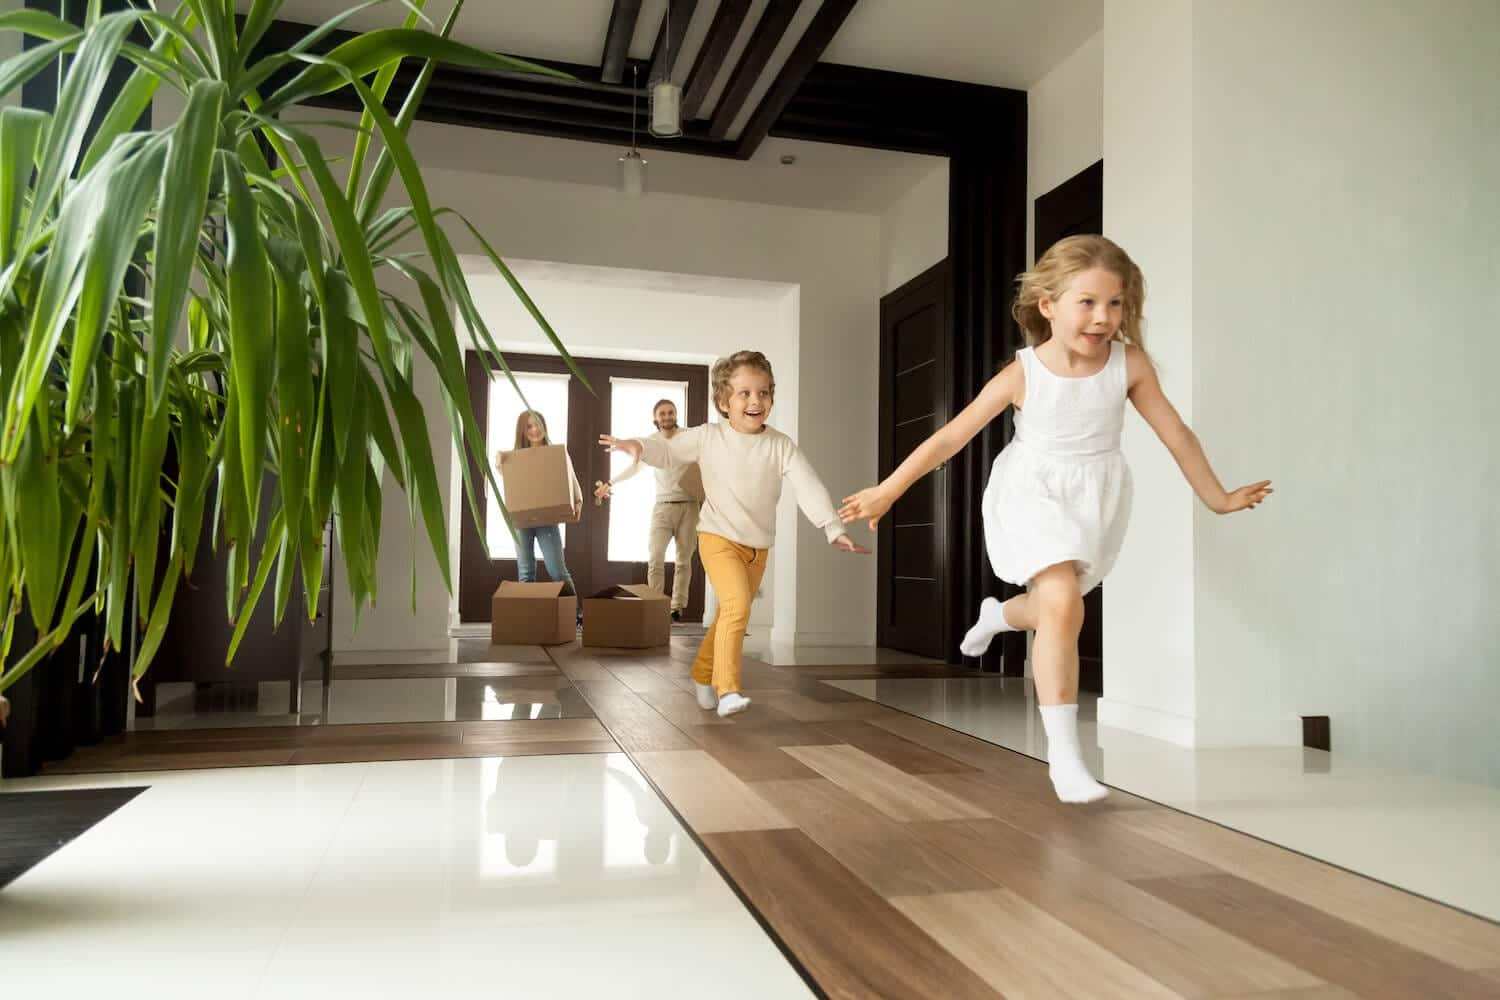 The Surprising Benefits of the Midyear Move